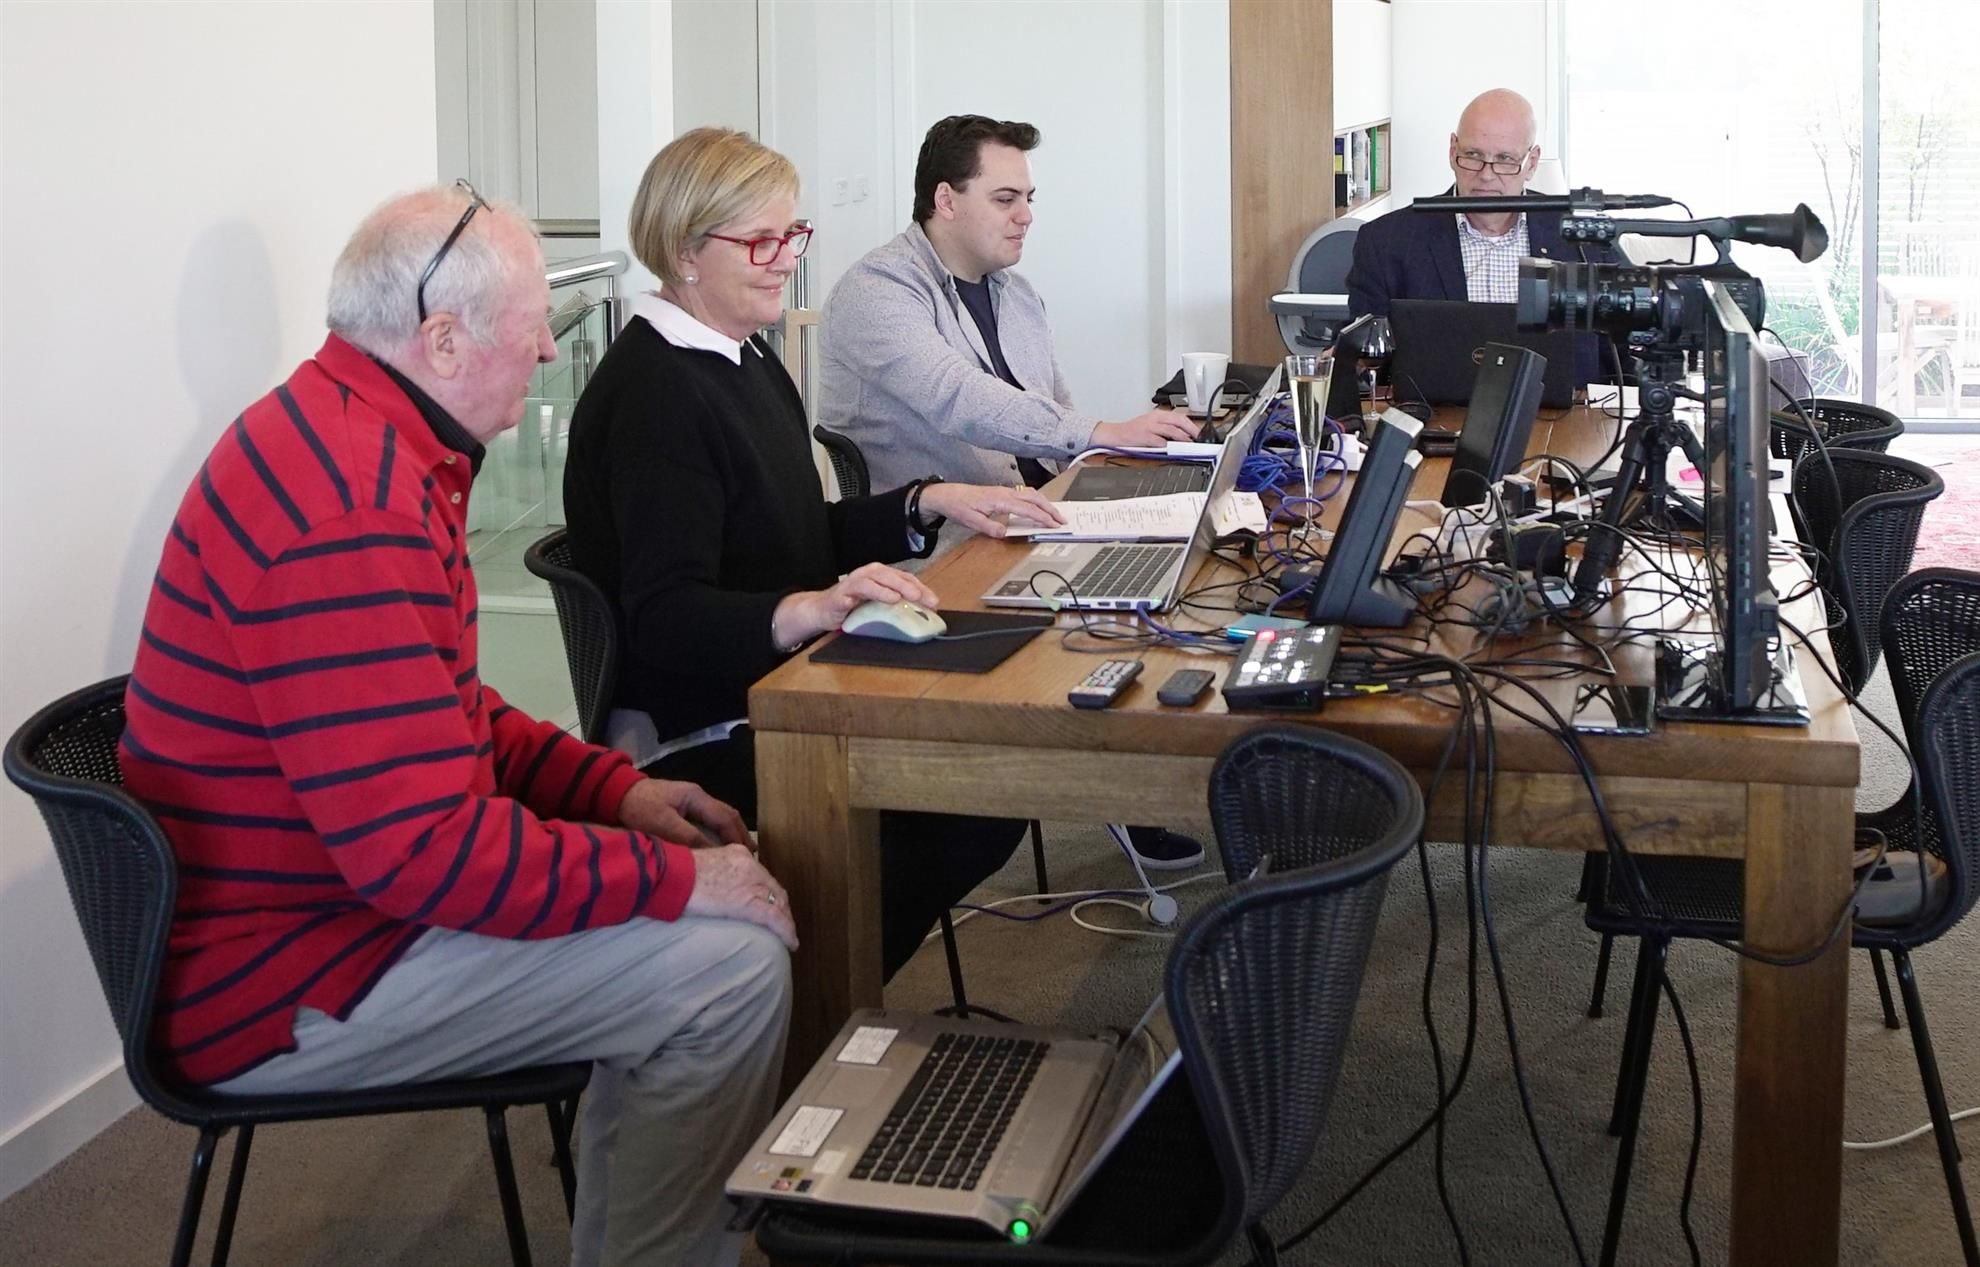 A group of people sitting at a table using a computerDescription automatically generated